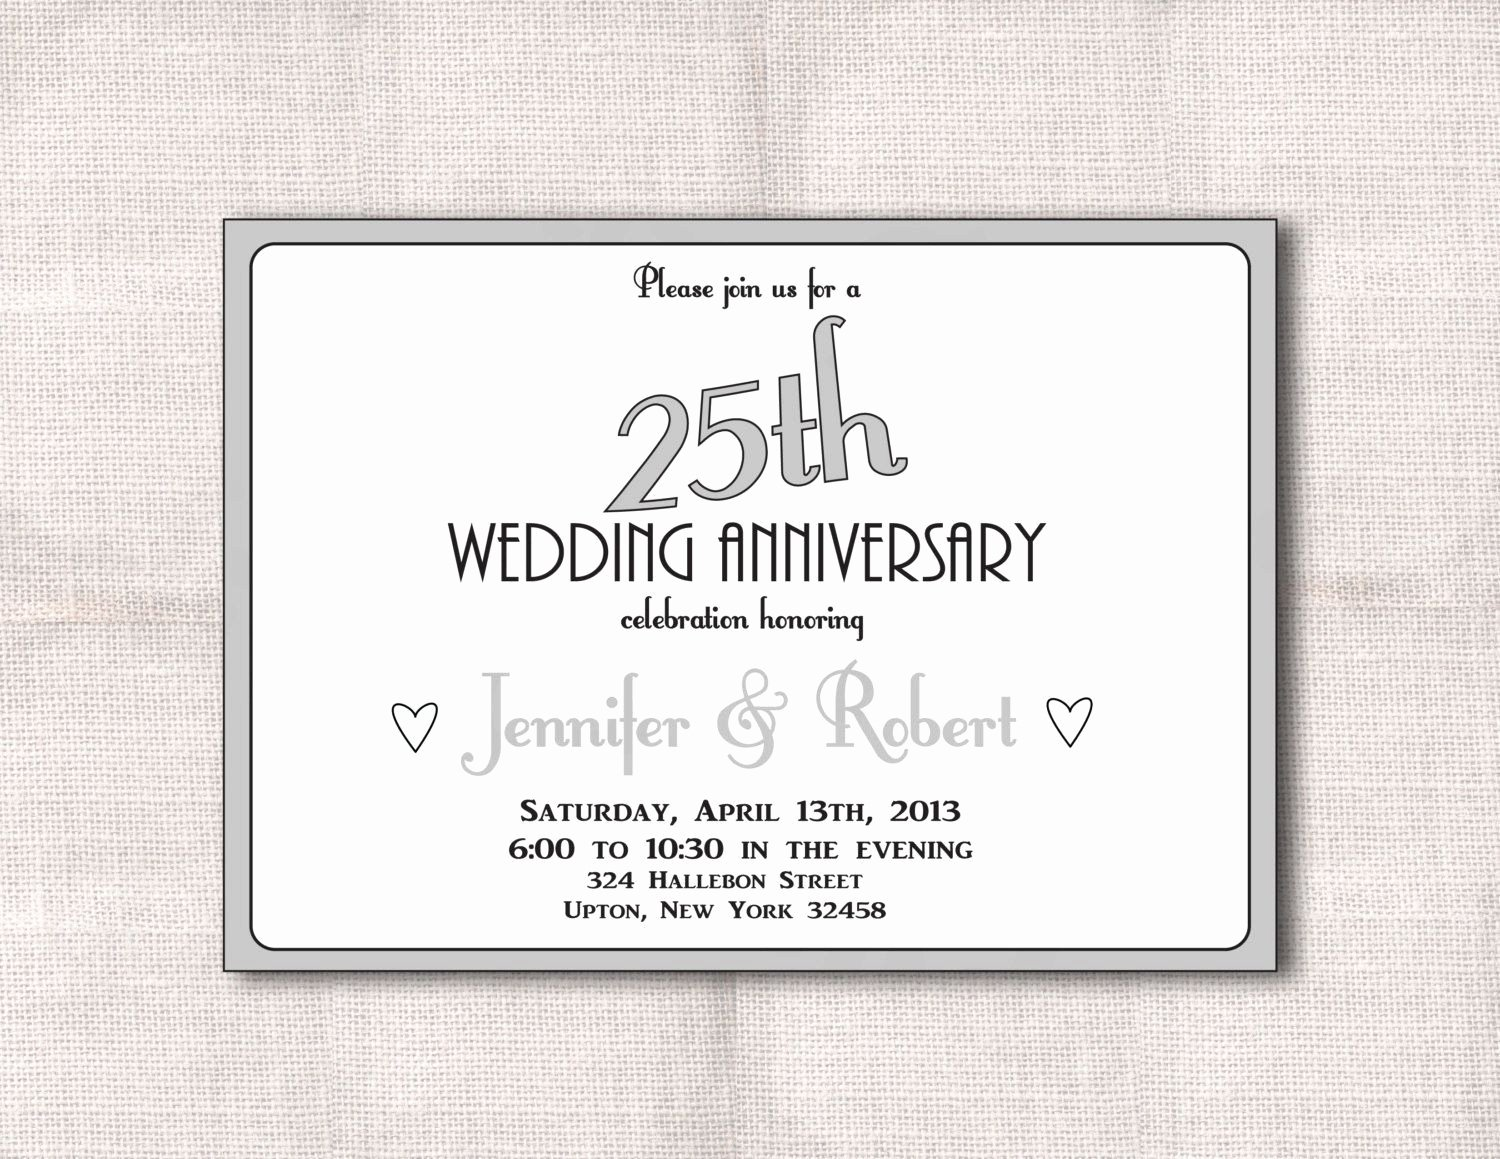 Wedding Anniversary Invitation Templates Beautiful Surprise 25th Wedding Anniversary Invitation Templates